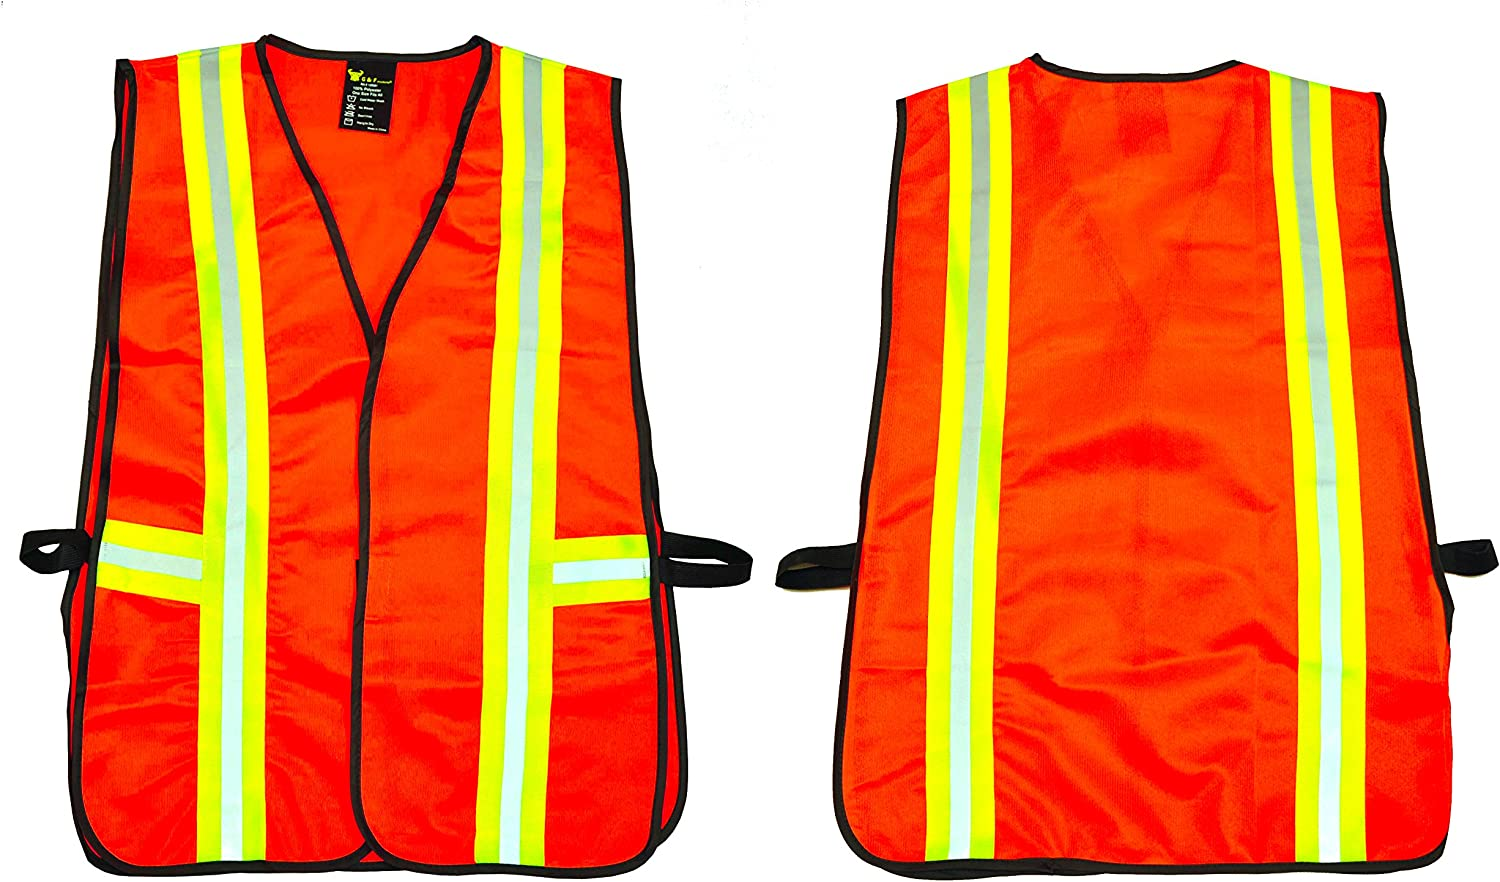 G & F 41113 Industrial Safety Vest with Reflective Stripes, Neon Orange - Safety Vest For Women -